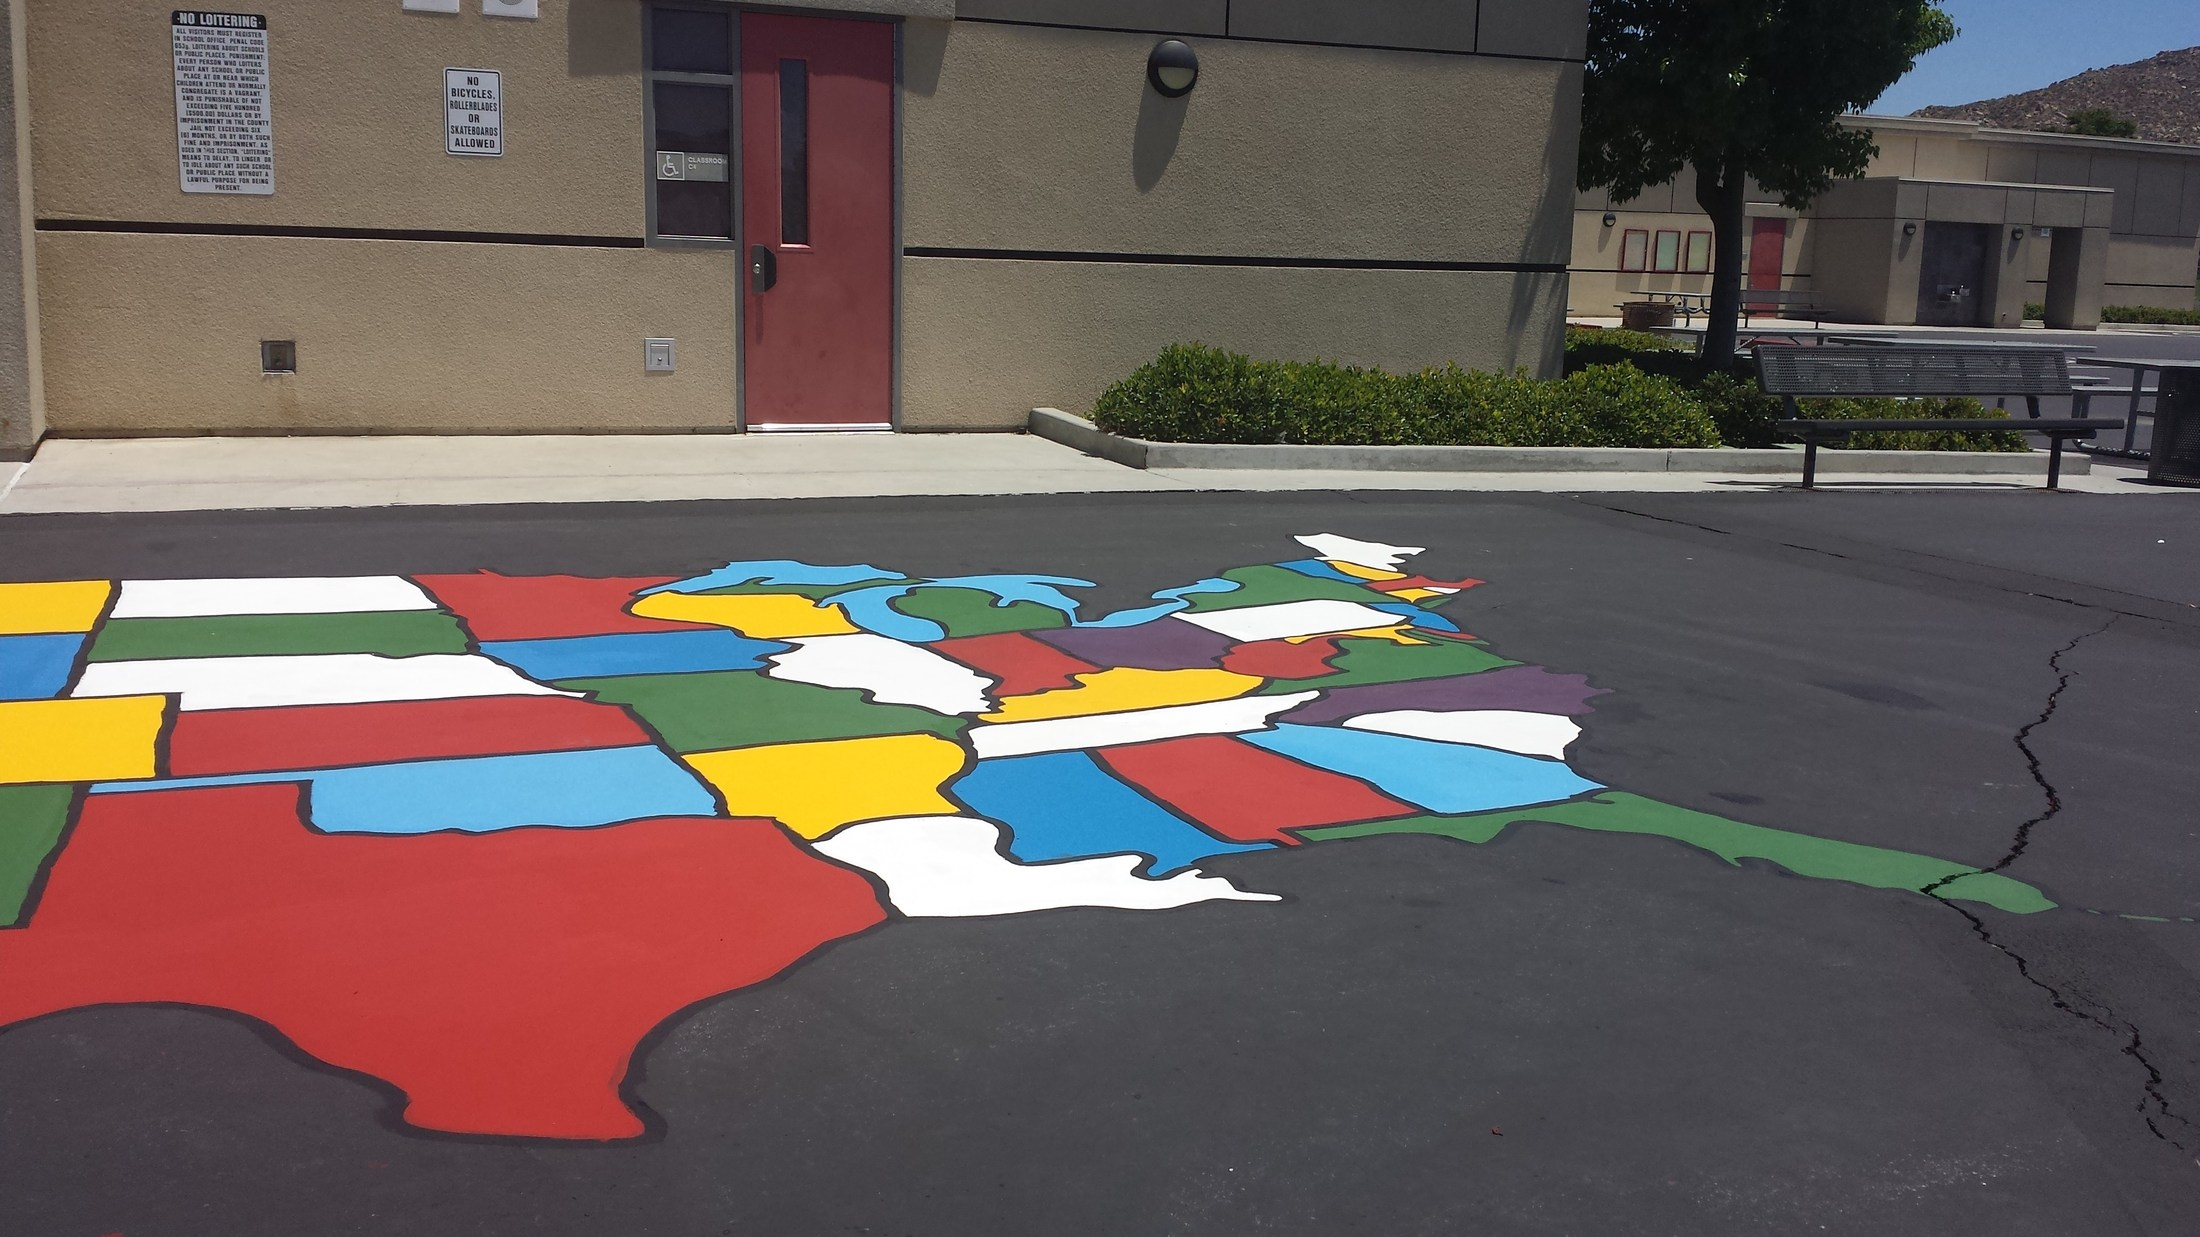 Repainted instructional map for students